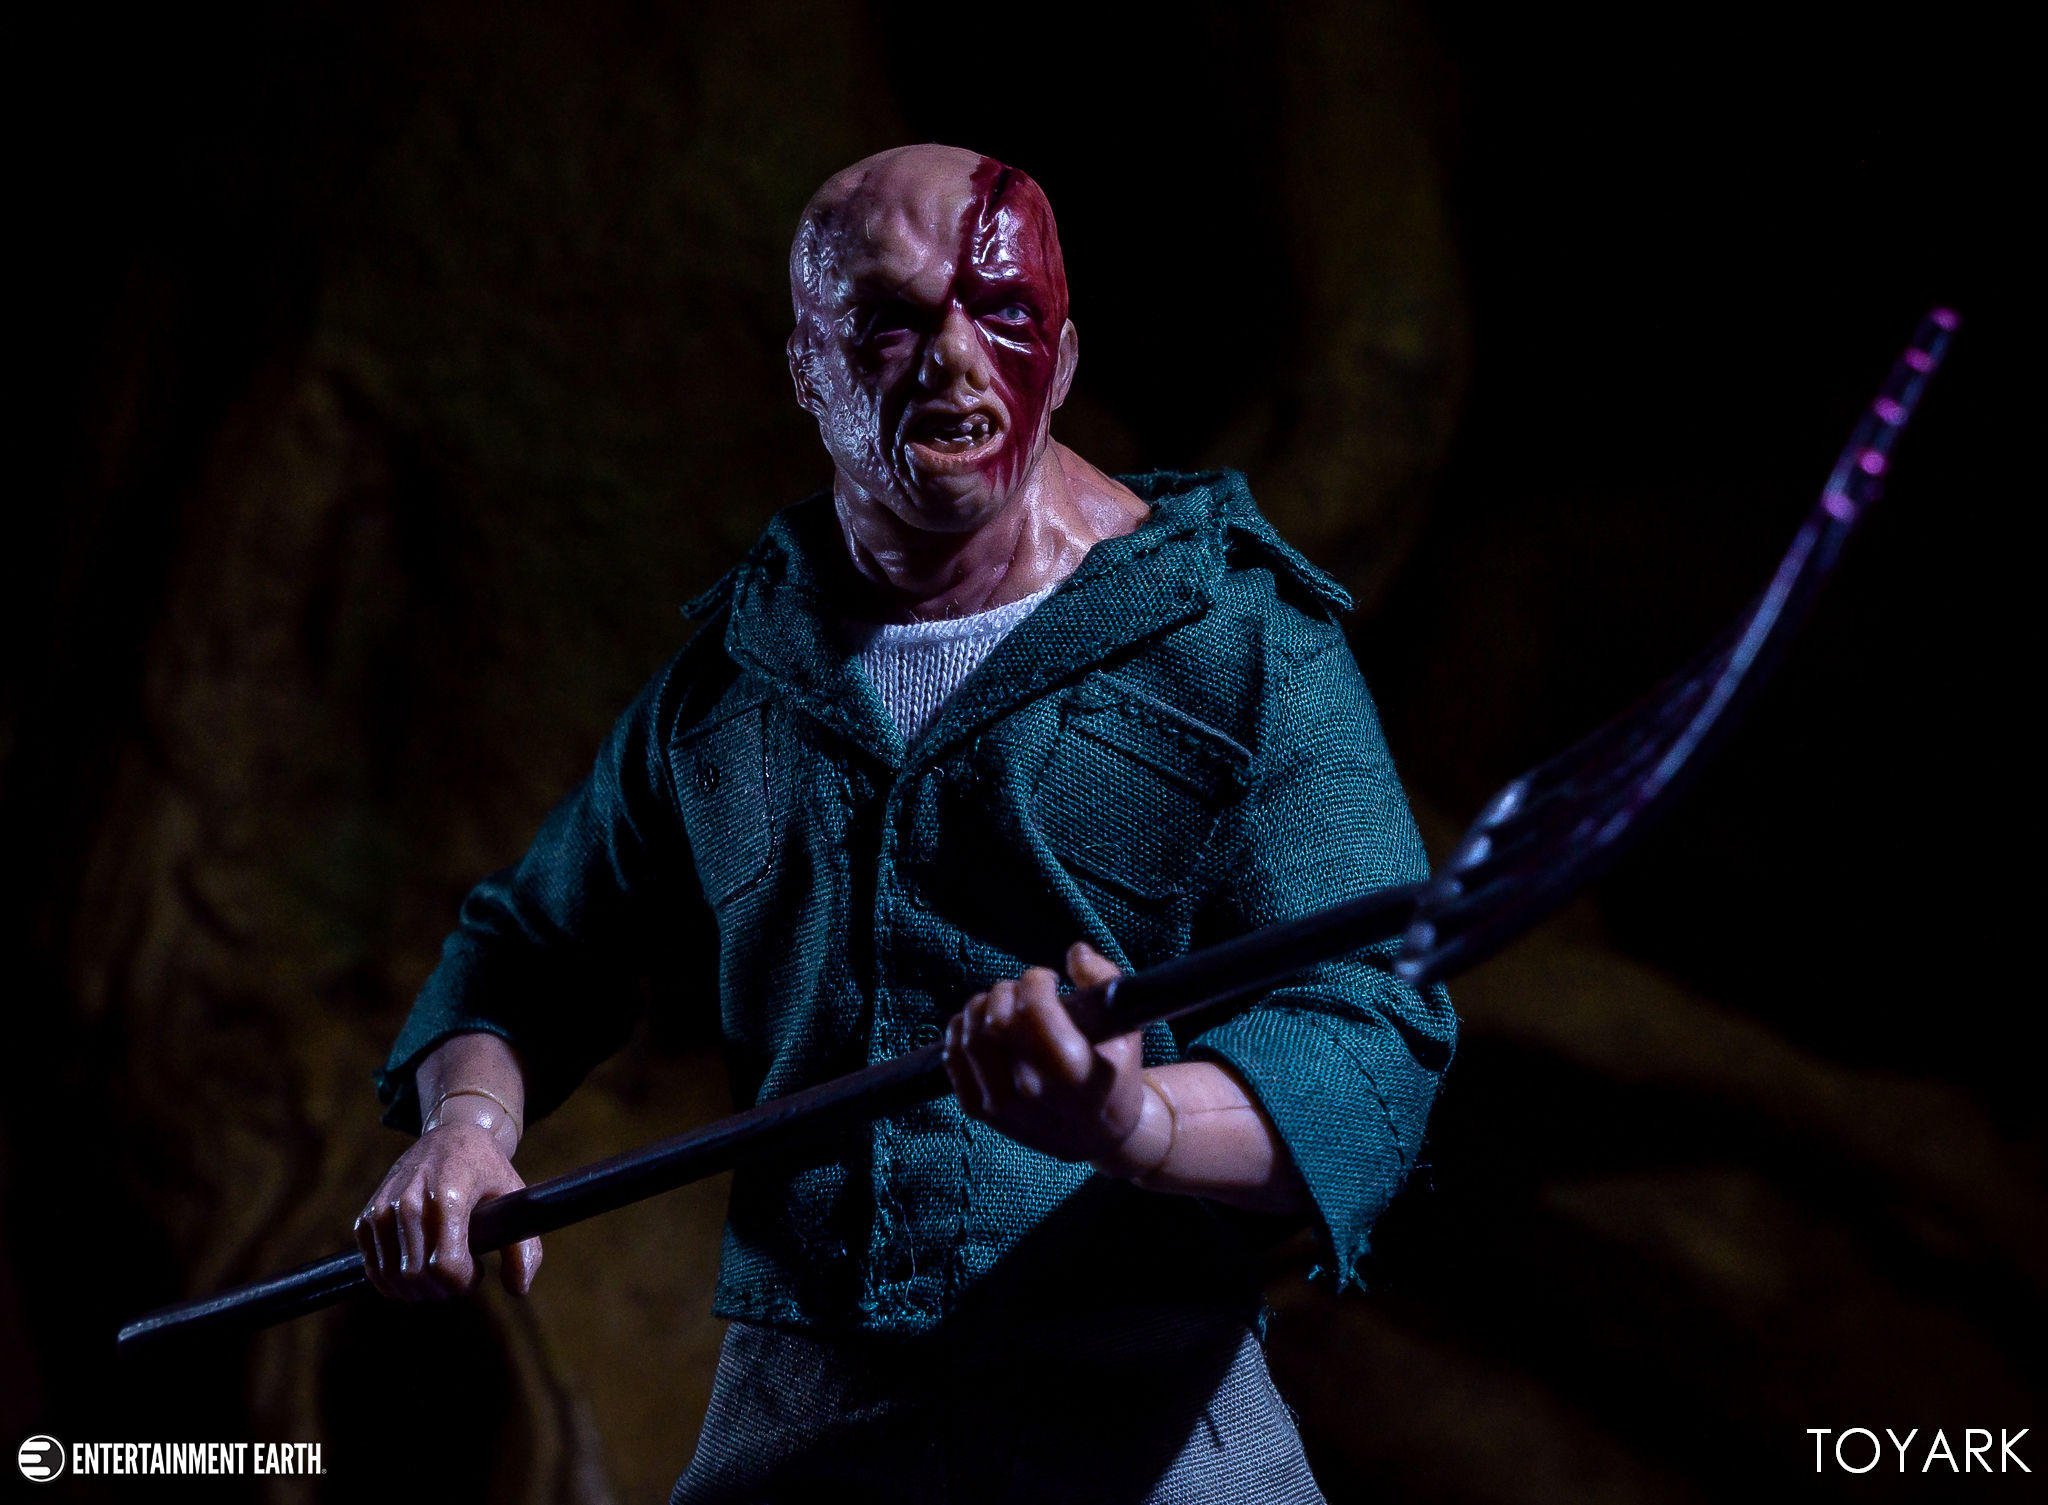 https://news.toyark.com/wp-content/uploads/sites/4/2019/04/One12-Part-3-Jason-Voorhees-044.jpg